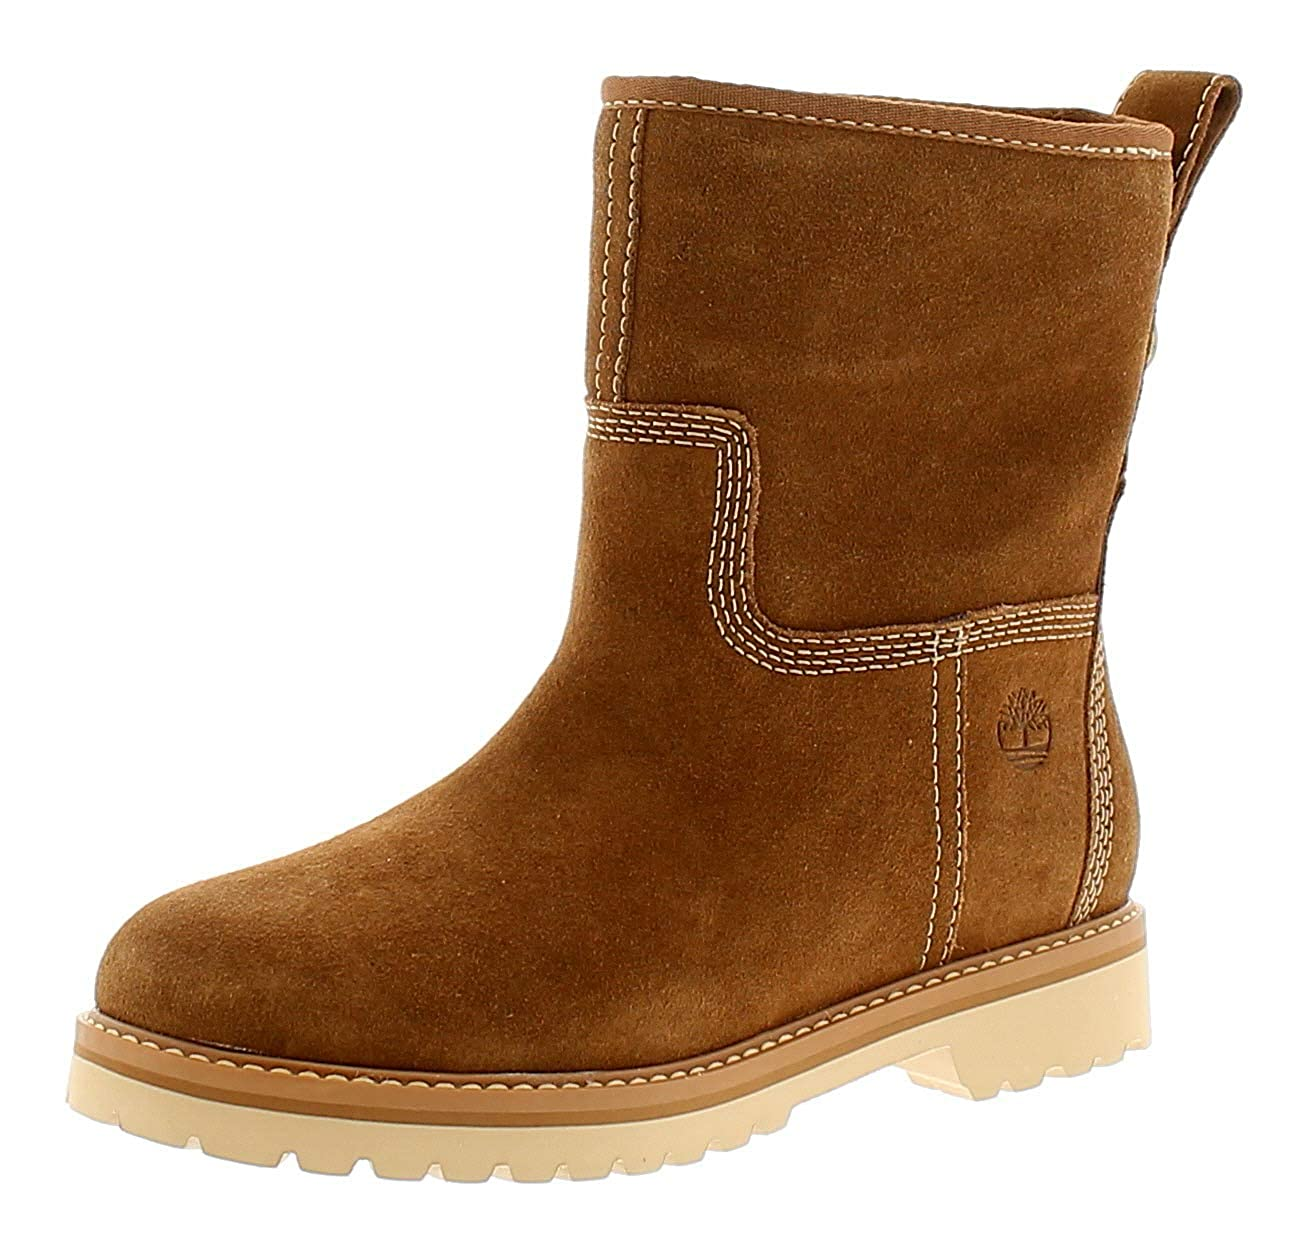 e5bb1e696963 Timberland Chamonix Valley Womens Ladies Leather Ankle Boots Tan - Tan - UK  Size 5.5  Amazon.co.uk  Shoes   Bags